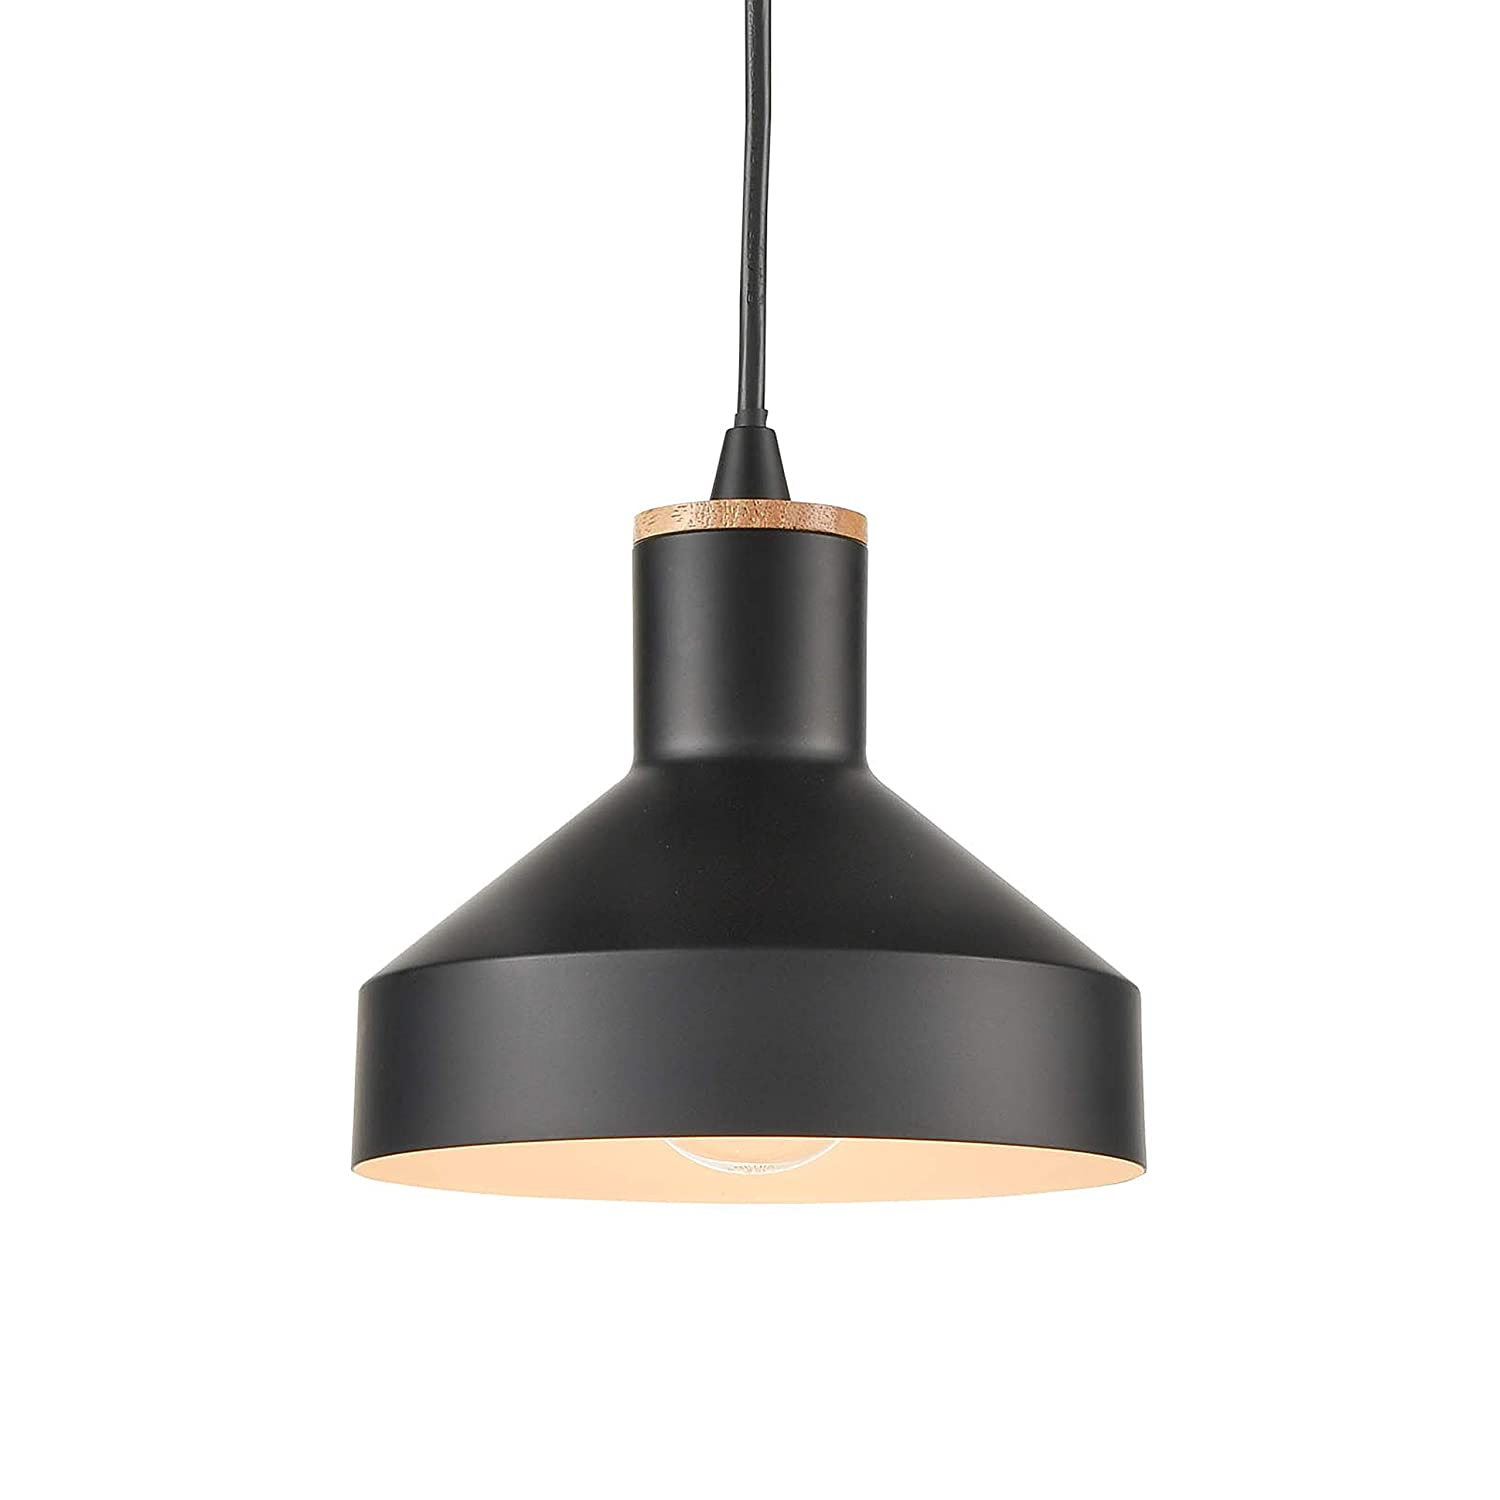 Light society vedder mini pendant light matte black with natural wood accent vintage modern farmhouse lighting fixture ls c144 amazon com